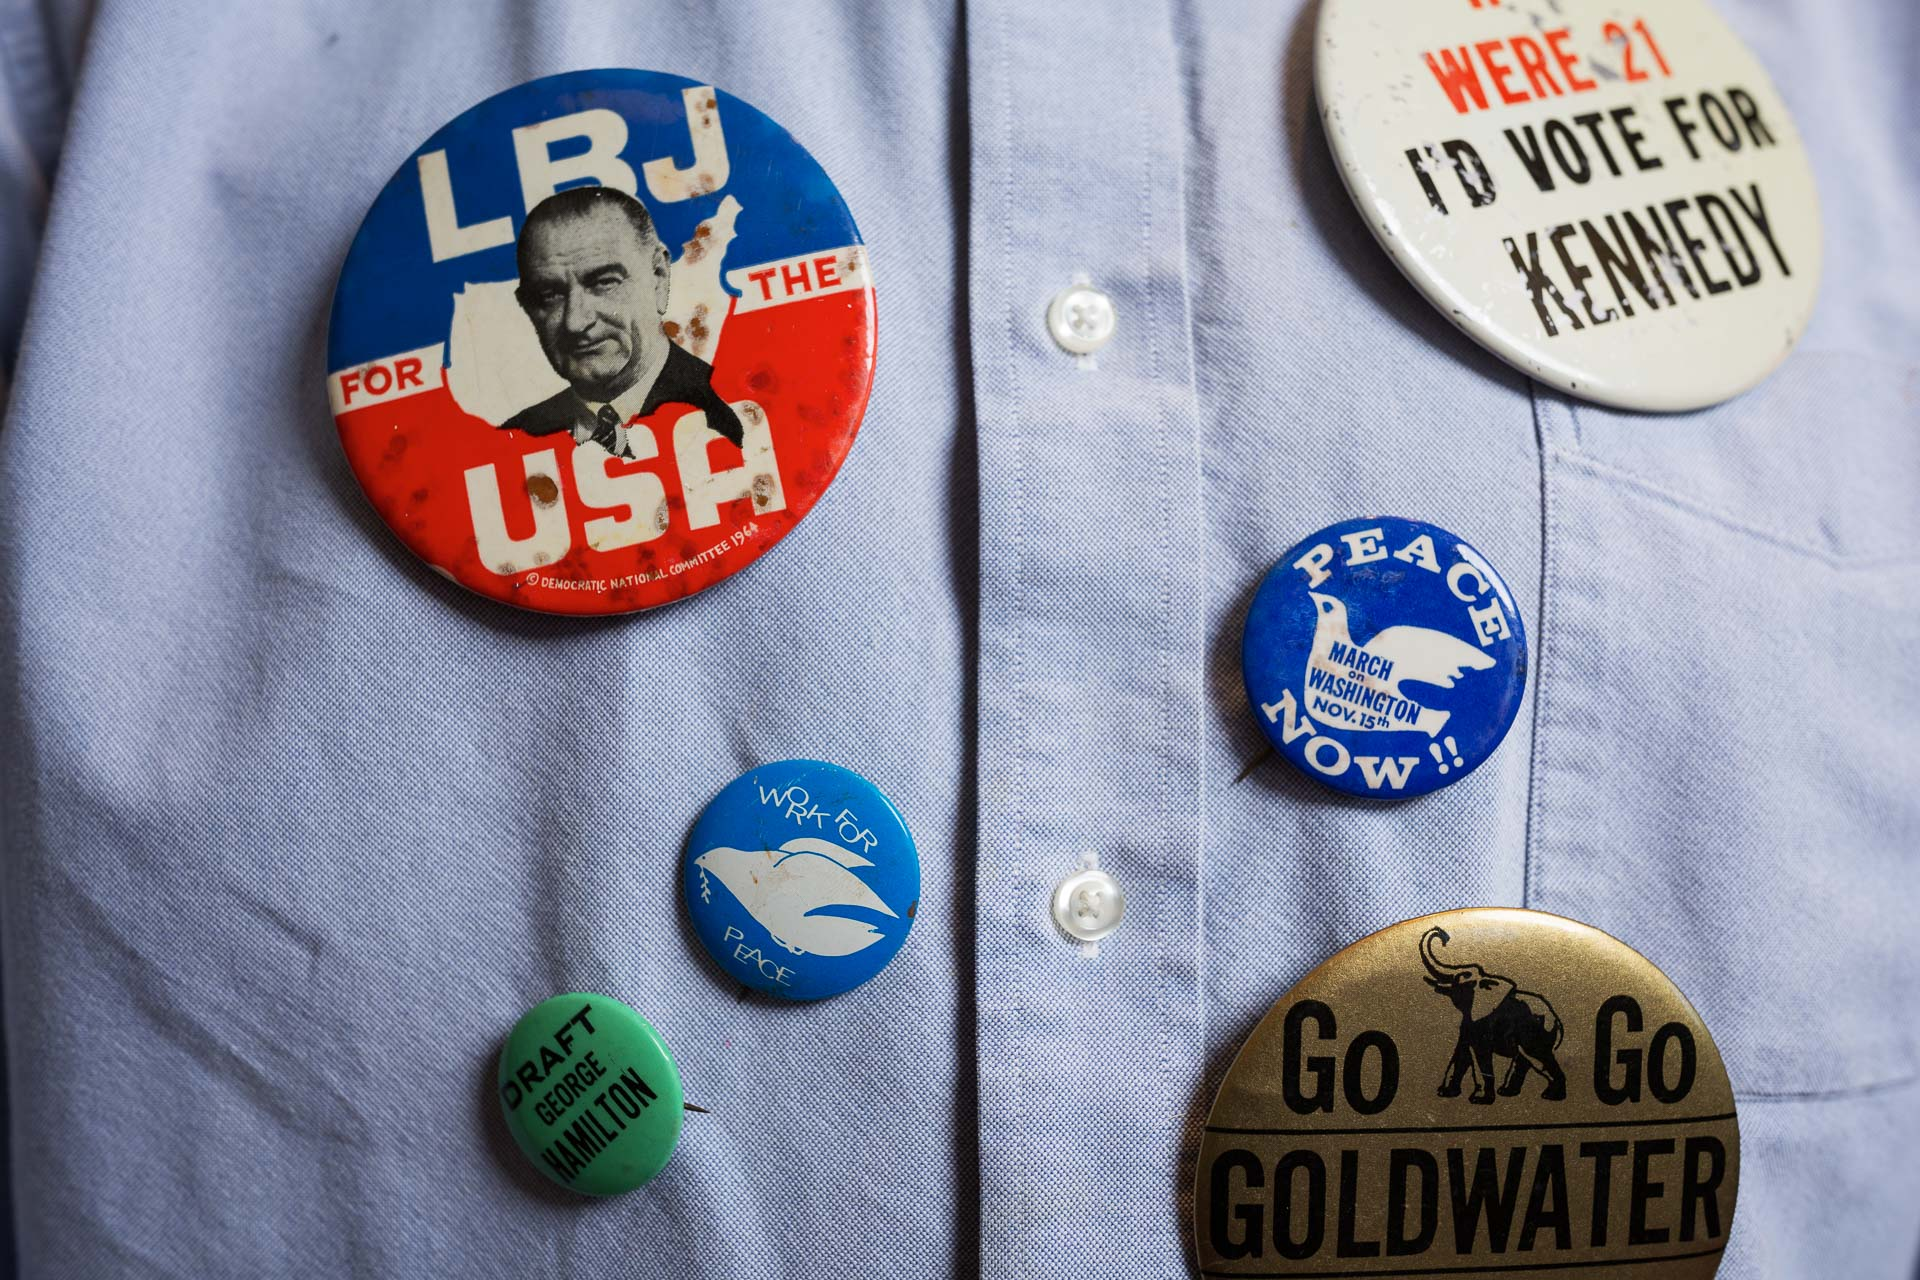 Peter Newman's political buttons